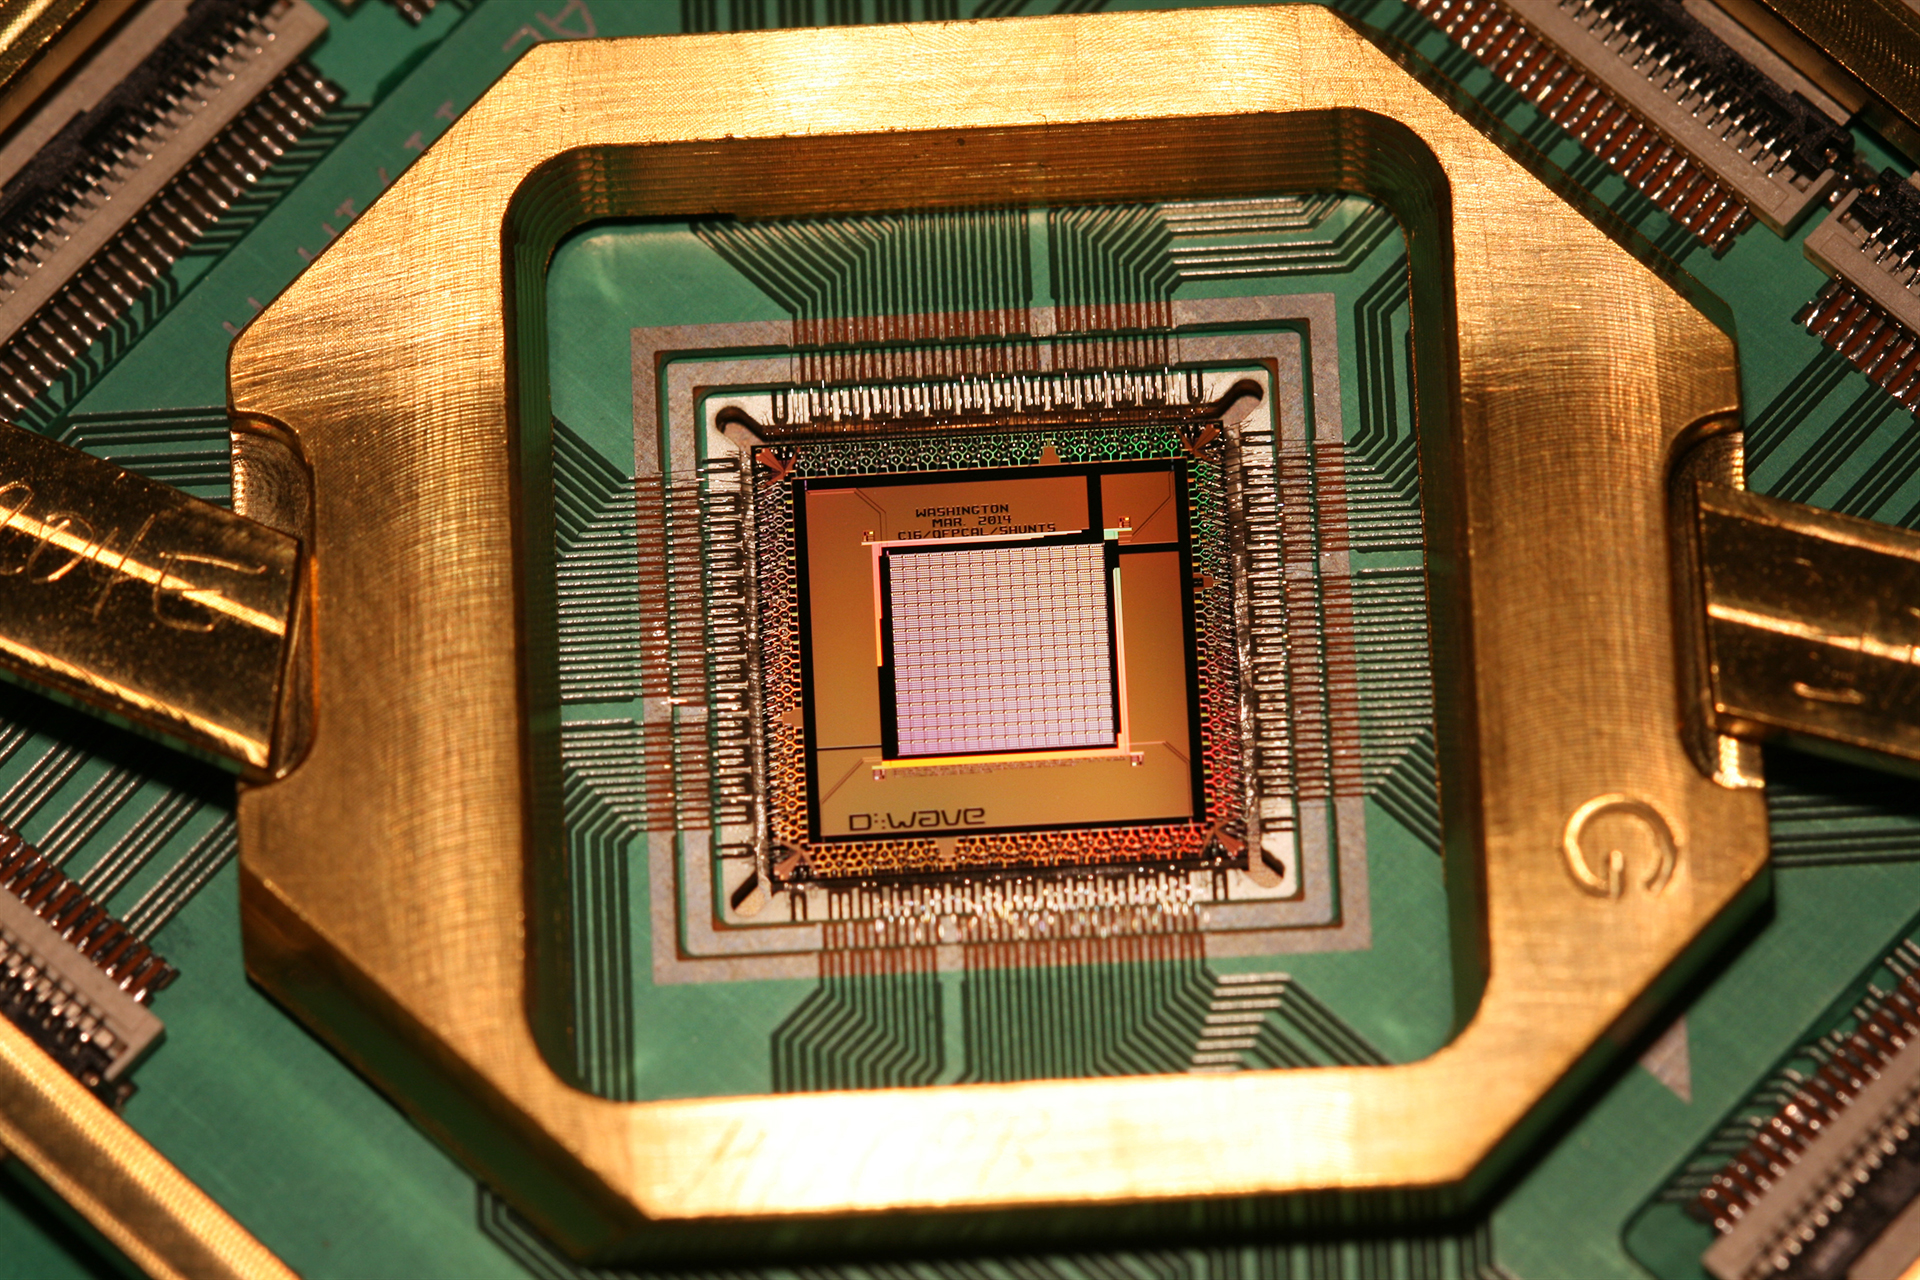 "A D-Wave computer chip (which <a href=""http://arstechnica.co.uk/science/2016/02/is-d-waves-quantum-processor-really-108-times-faster-than-a-normal-computer/"">may or may not be capable of quantum computing</a>)."